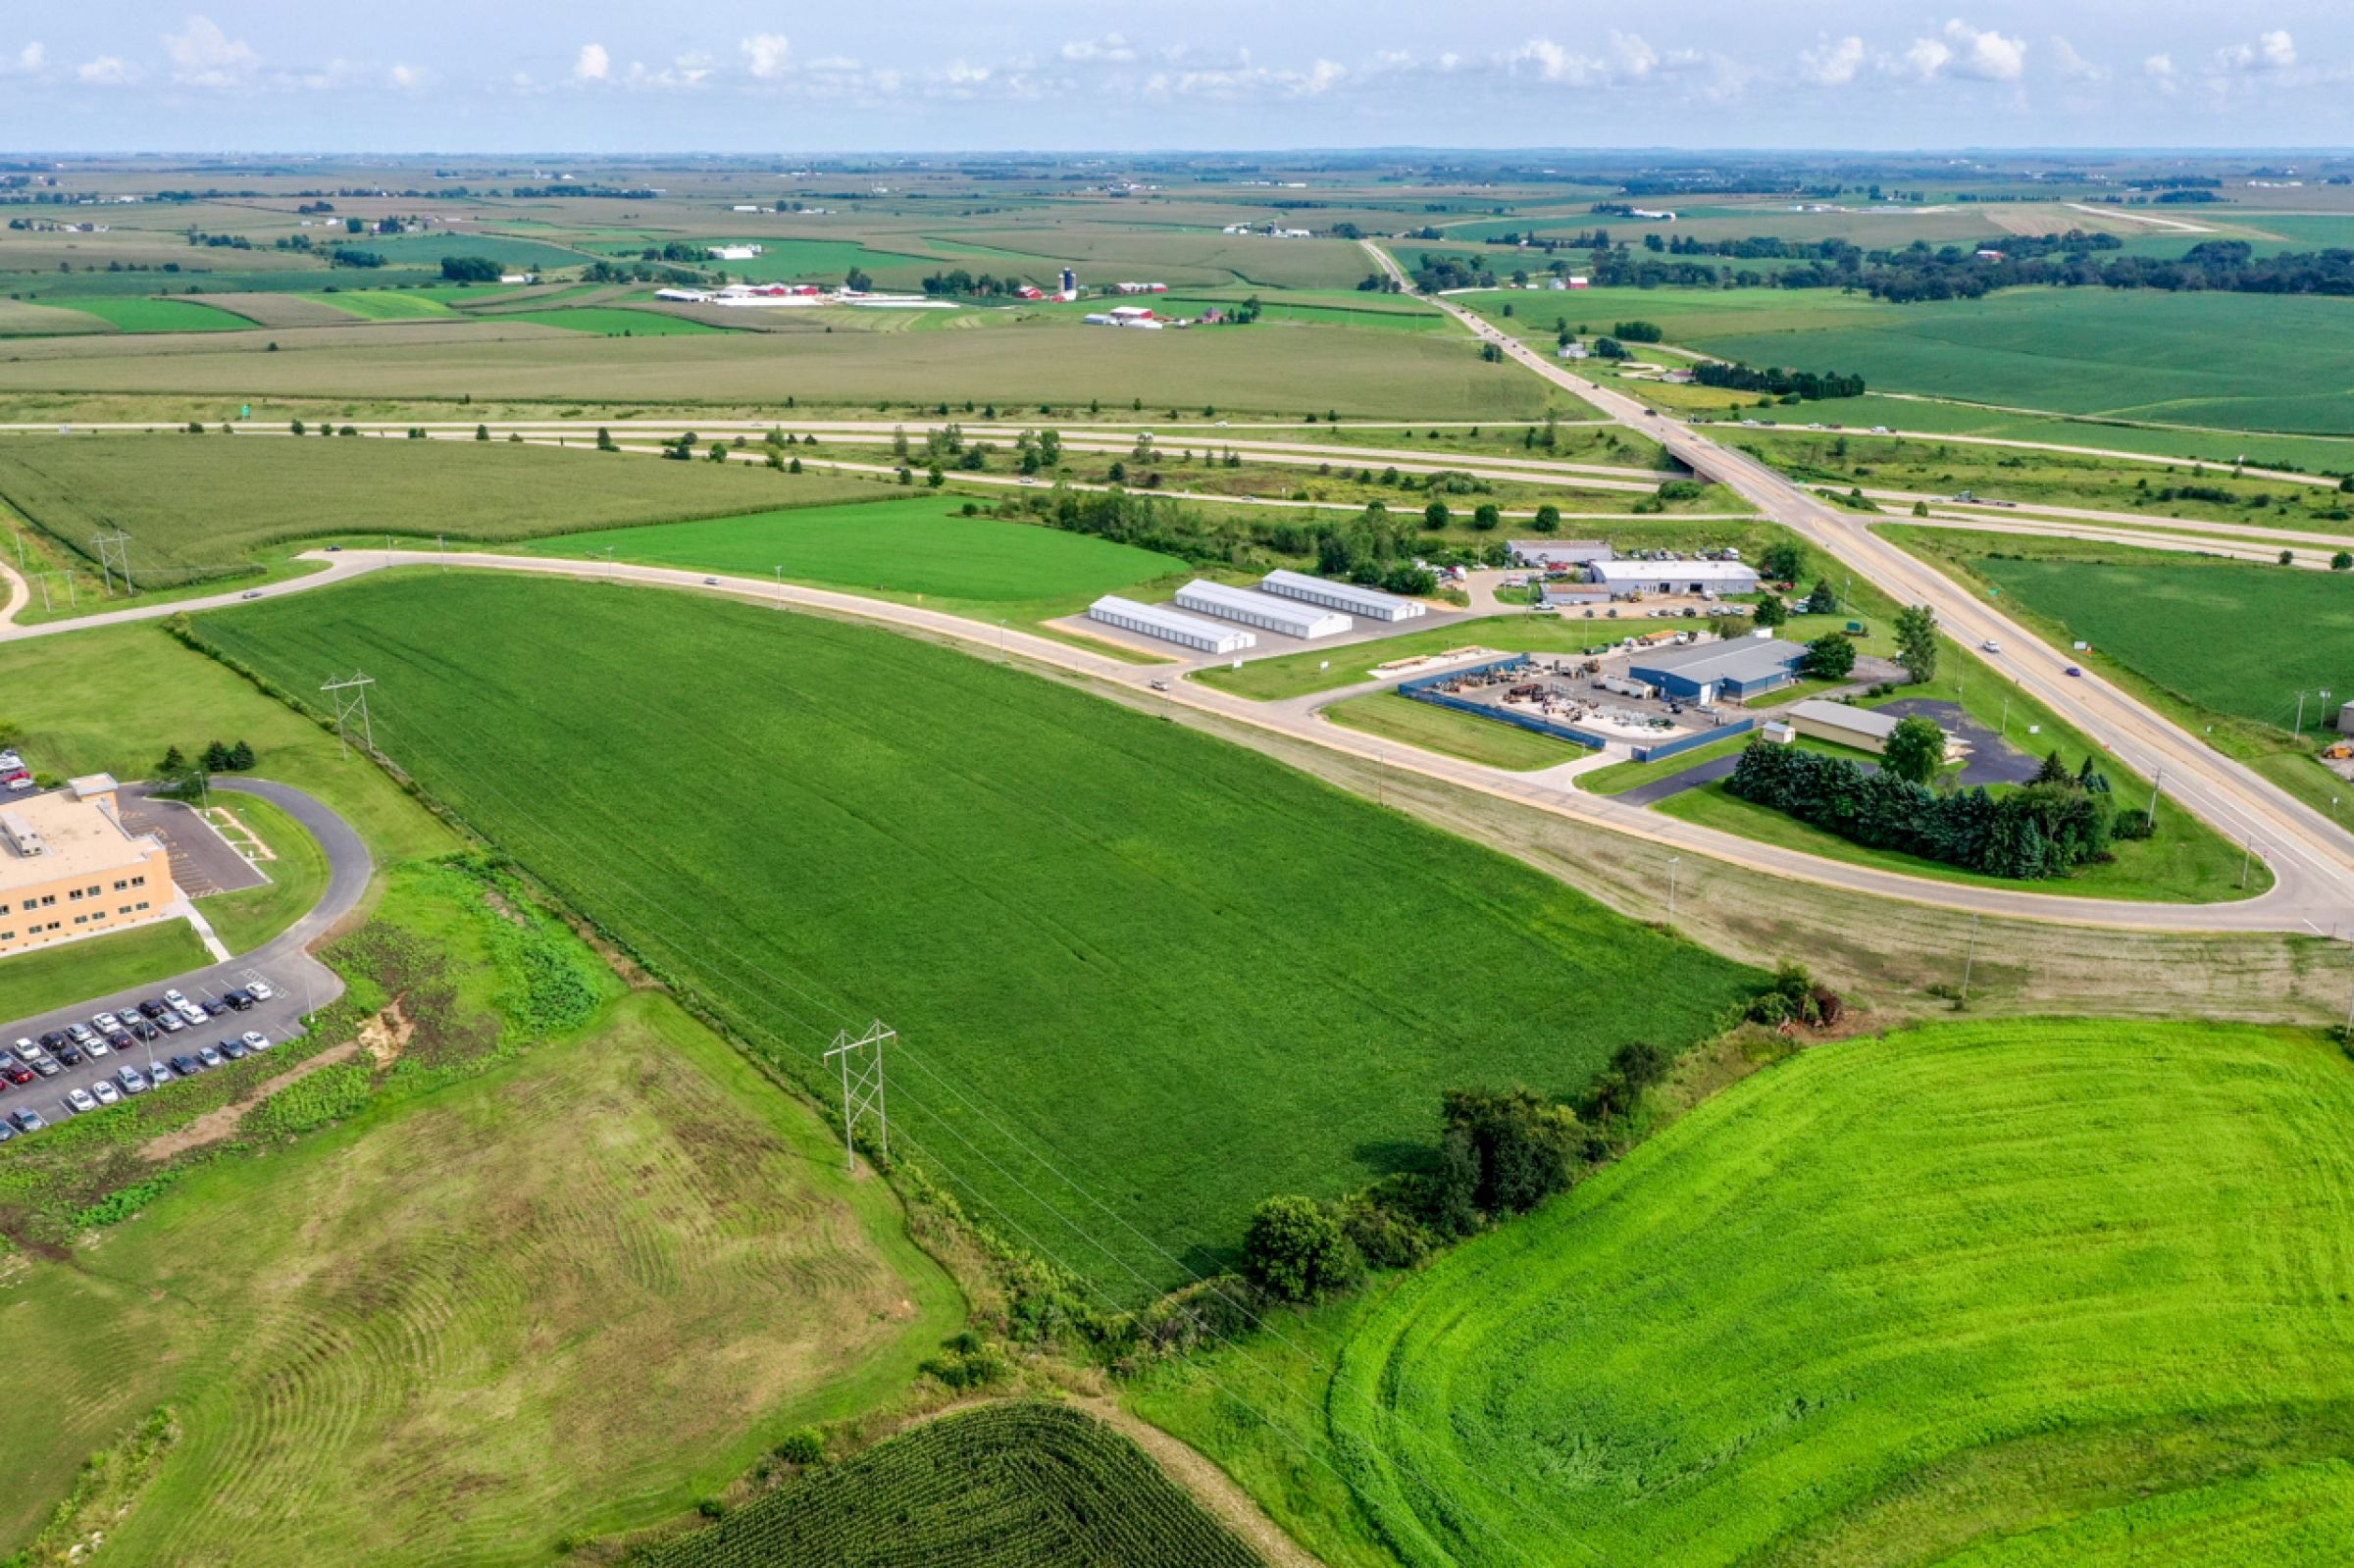 development-land-grant-county-wisconsin-12-acres-listing-number-15746-3-2021-09-13-014236.jpg